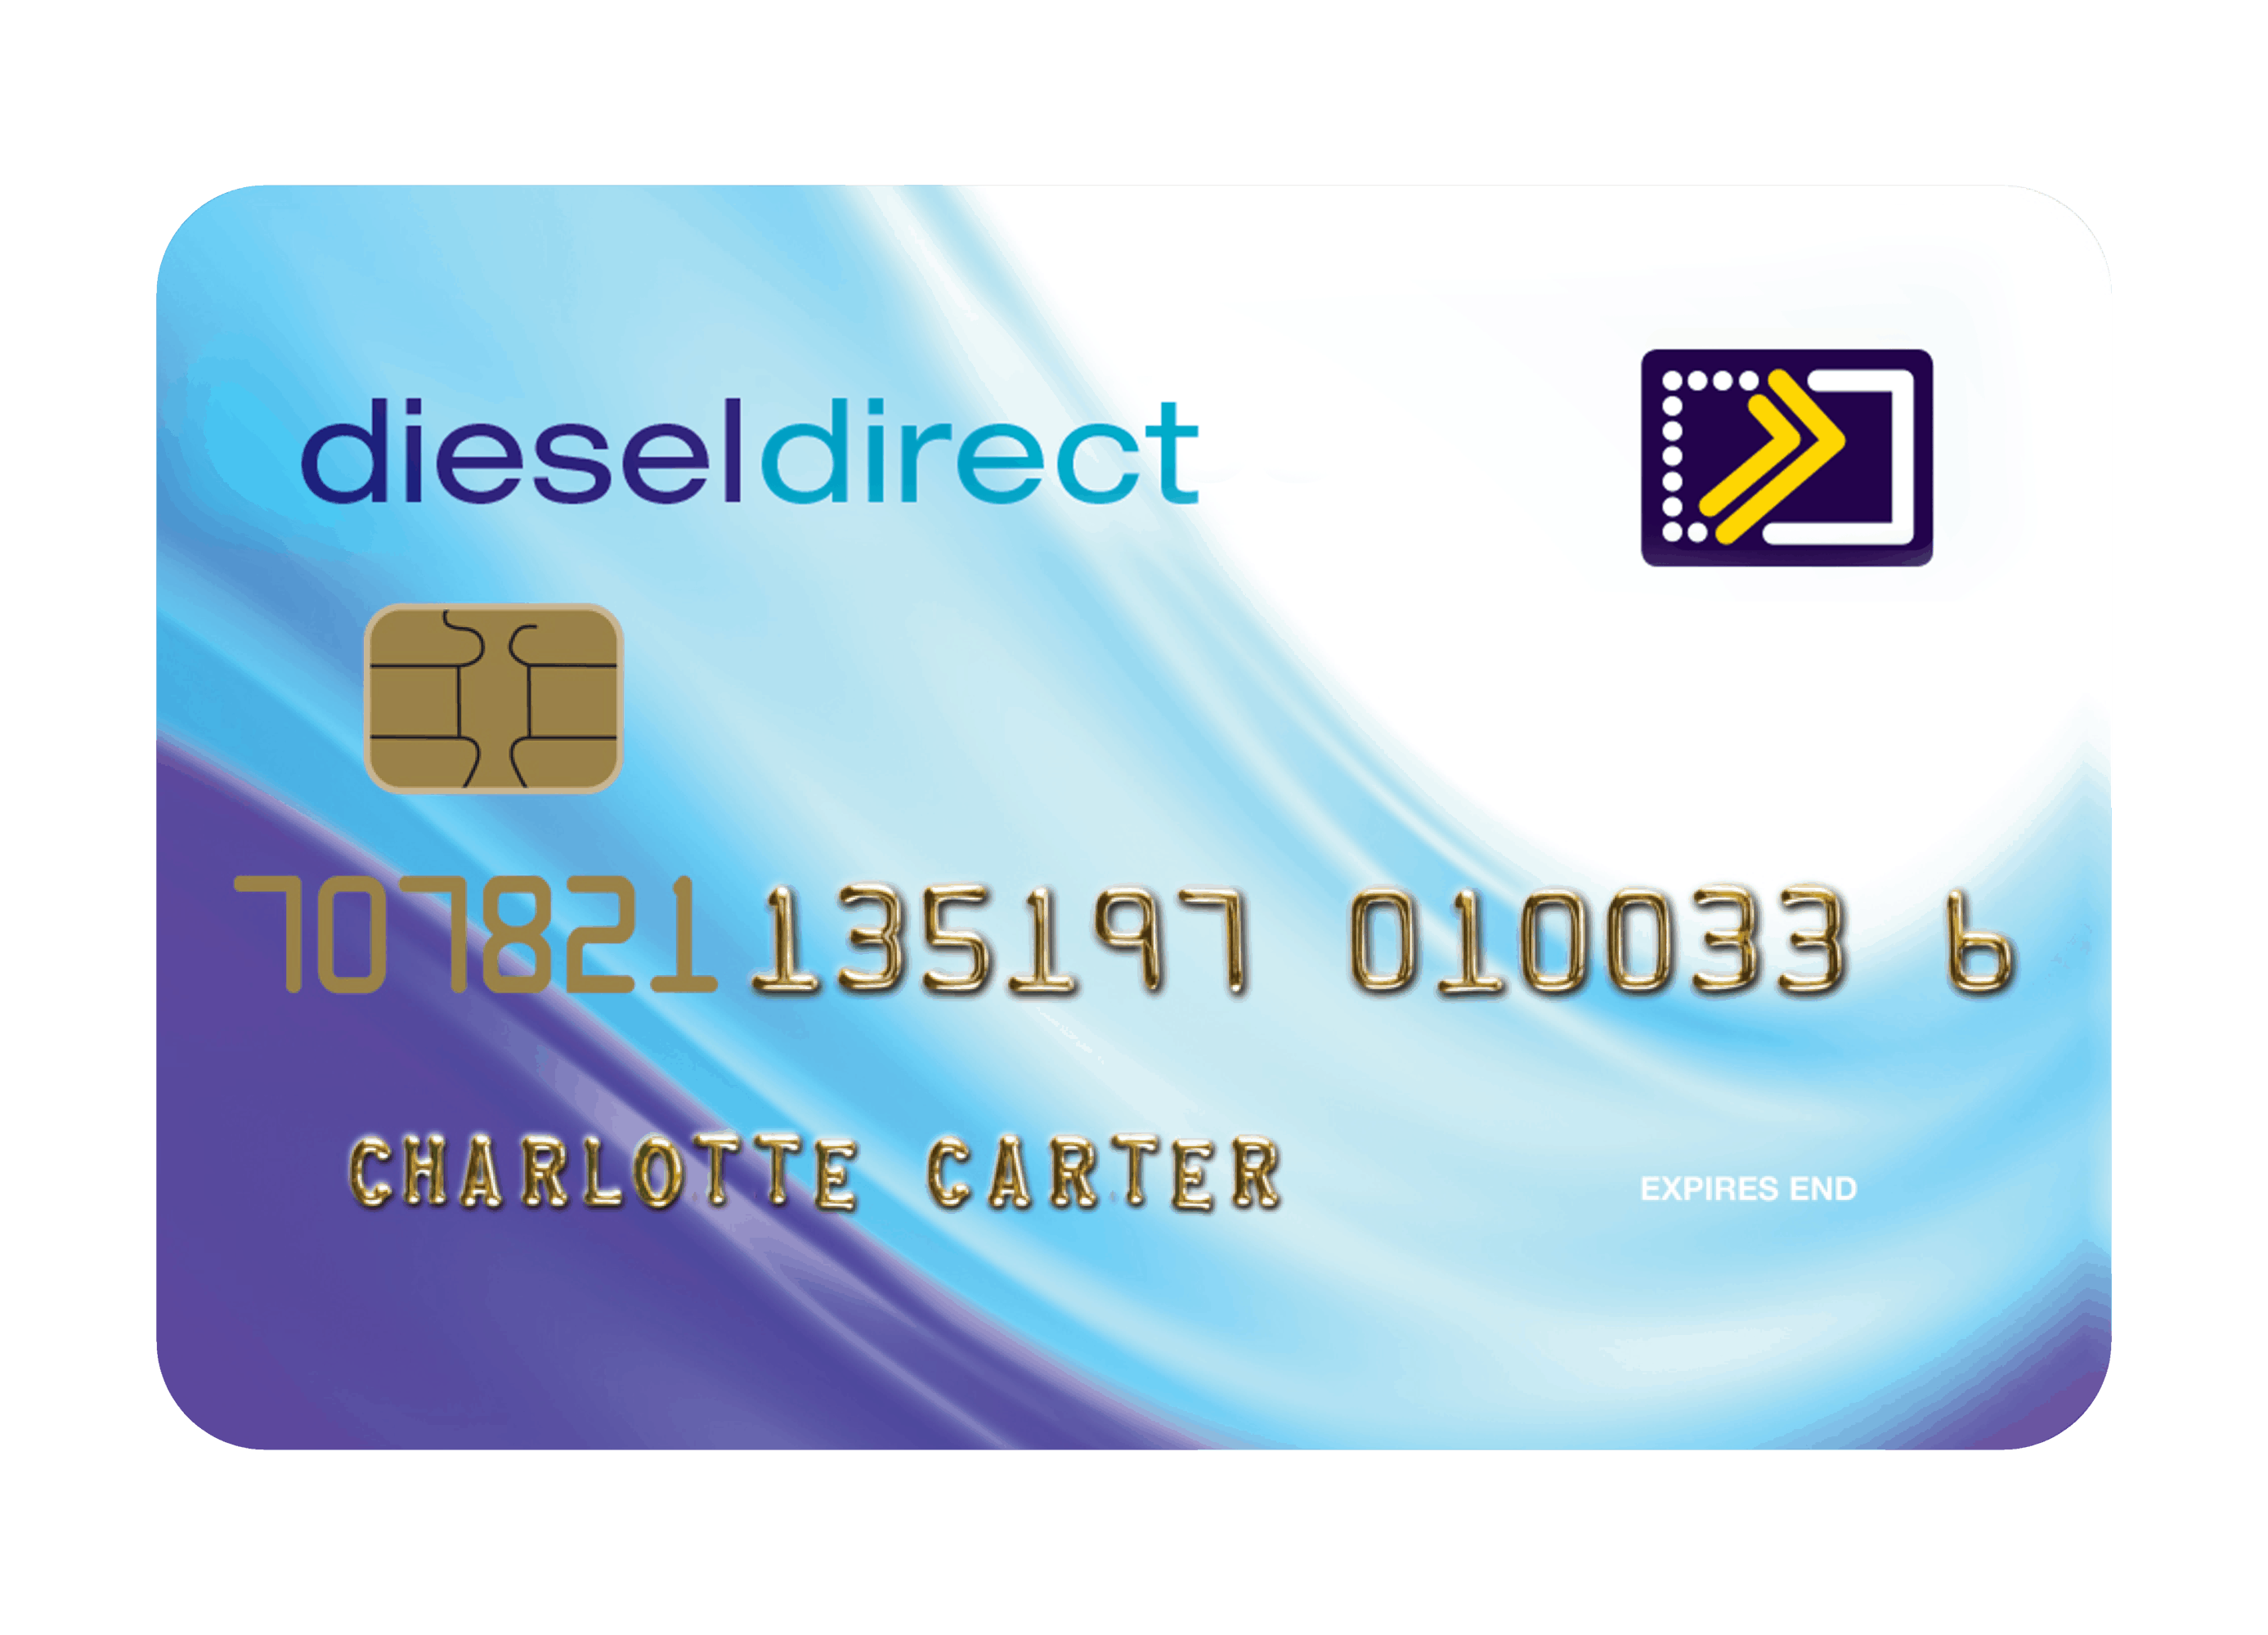 Diesel Direct (Discount) Fuel Card | The Fuelcard People